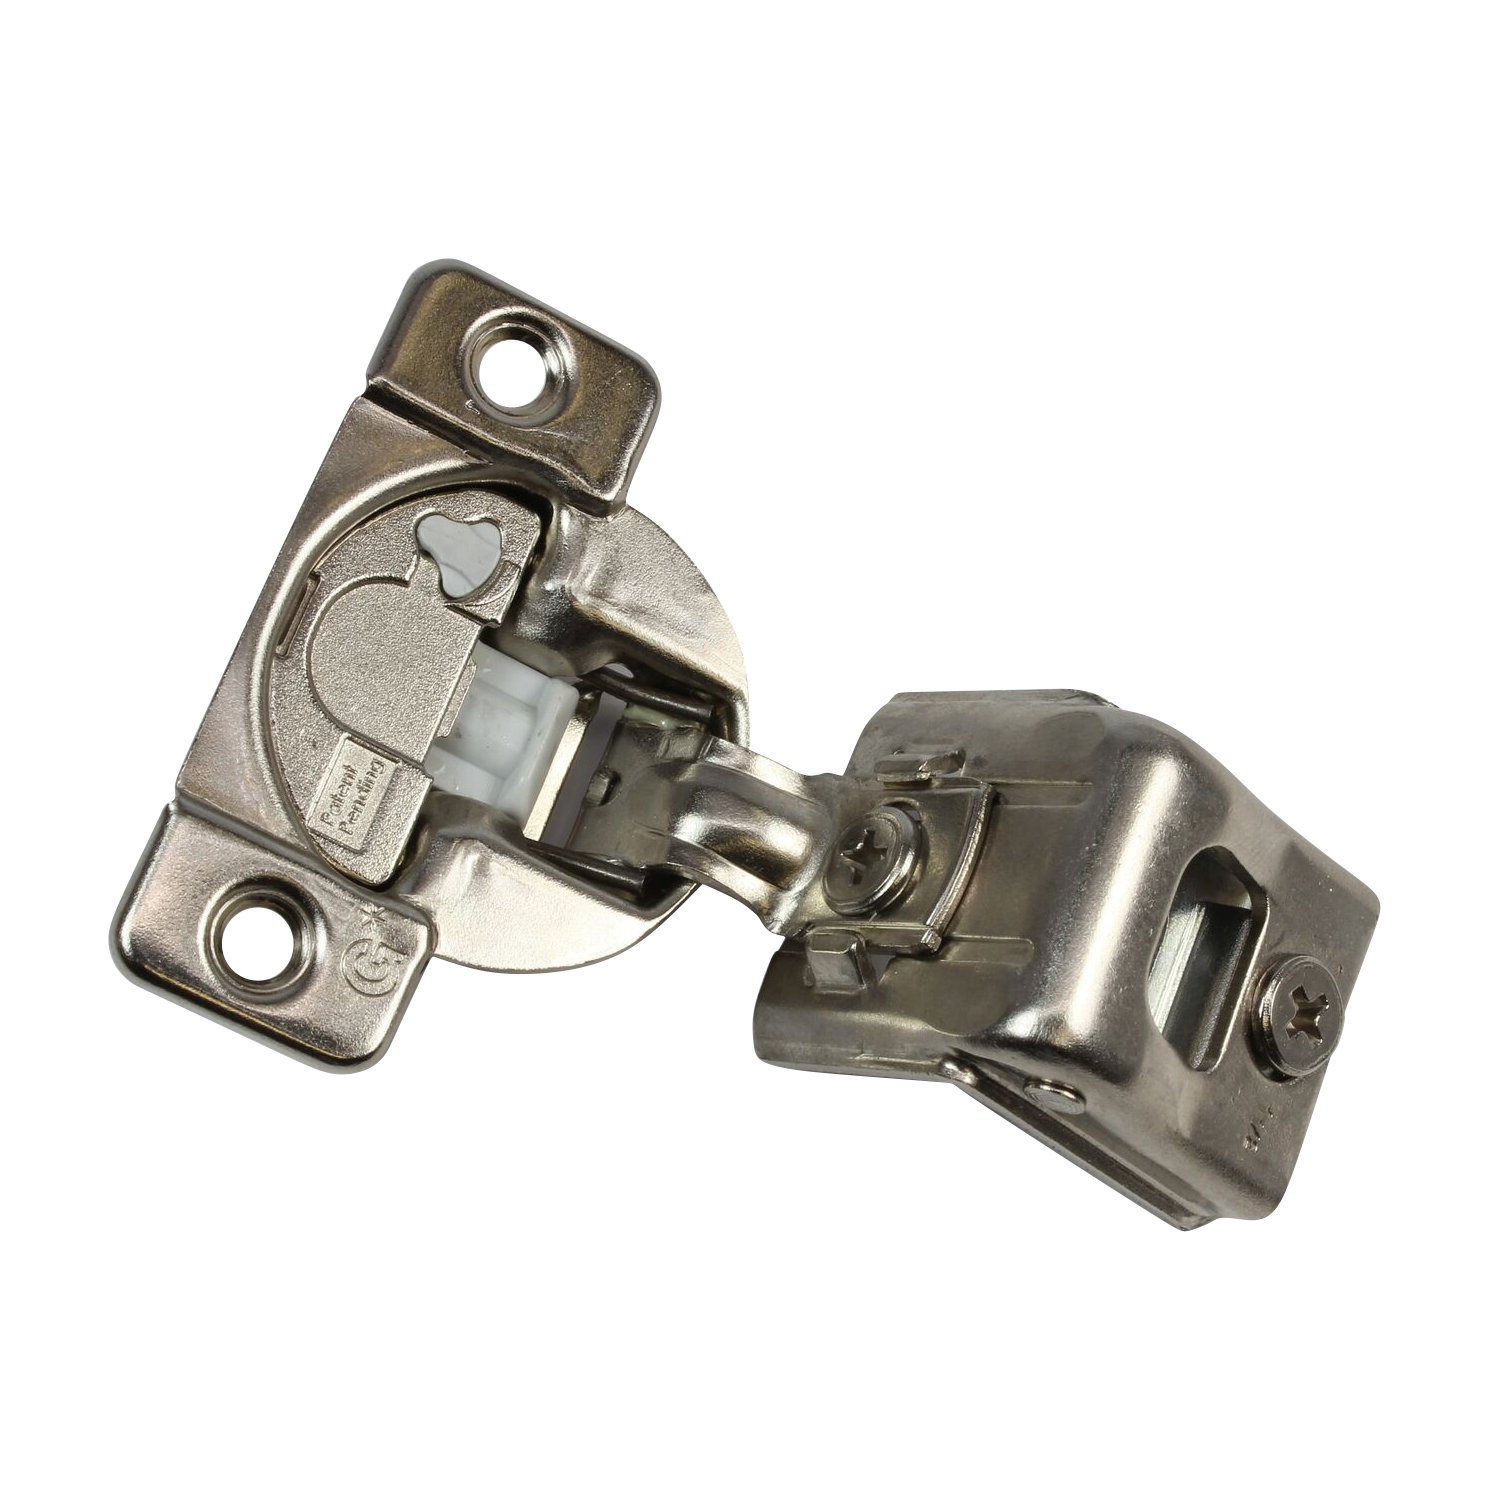 25 Pack Rok Hardware Grass TEC 864 108 Degree 1-1/2'' Overlay 3 Level Soft Close Screw On Compact Cabinet Hinge 04549A-15 3-Way Adjustment 45mm Screw Hole Pattern